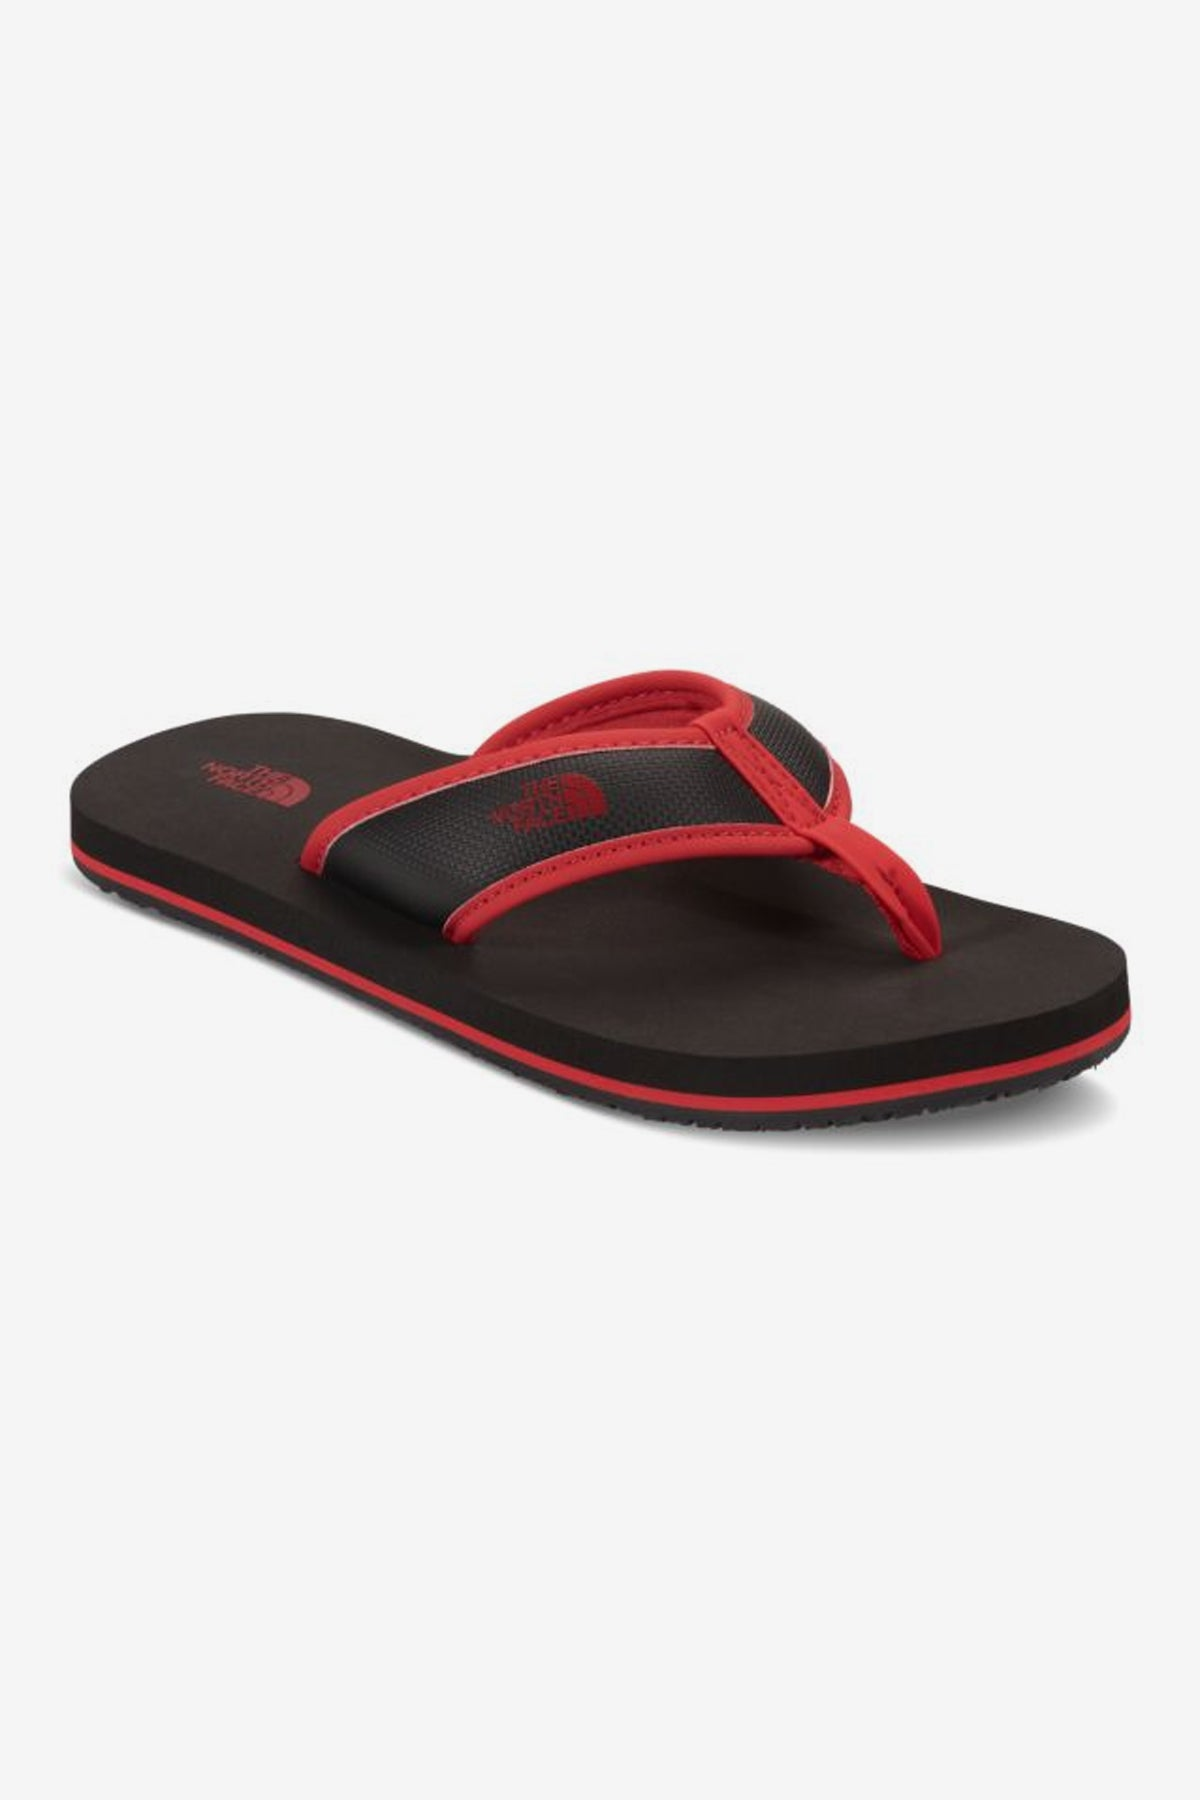 89423d5d8215 The North Face Base Camp Flip Flop - Phantom Red - Mini Ruby